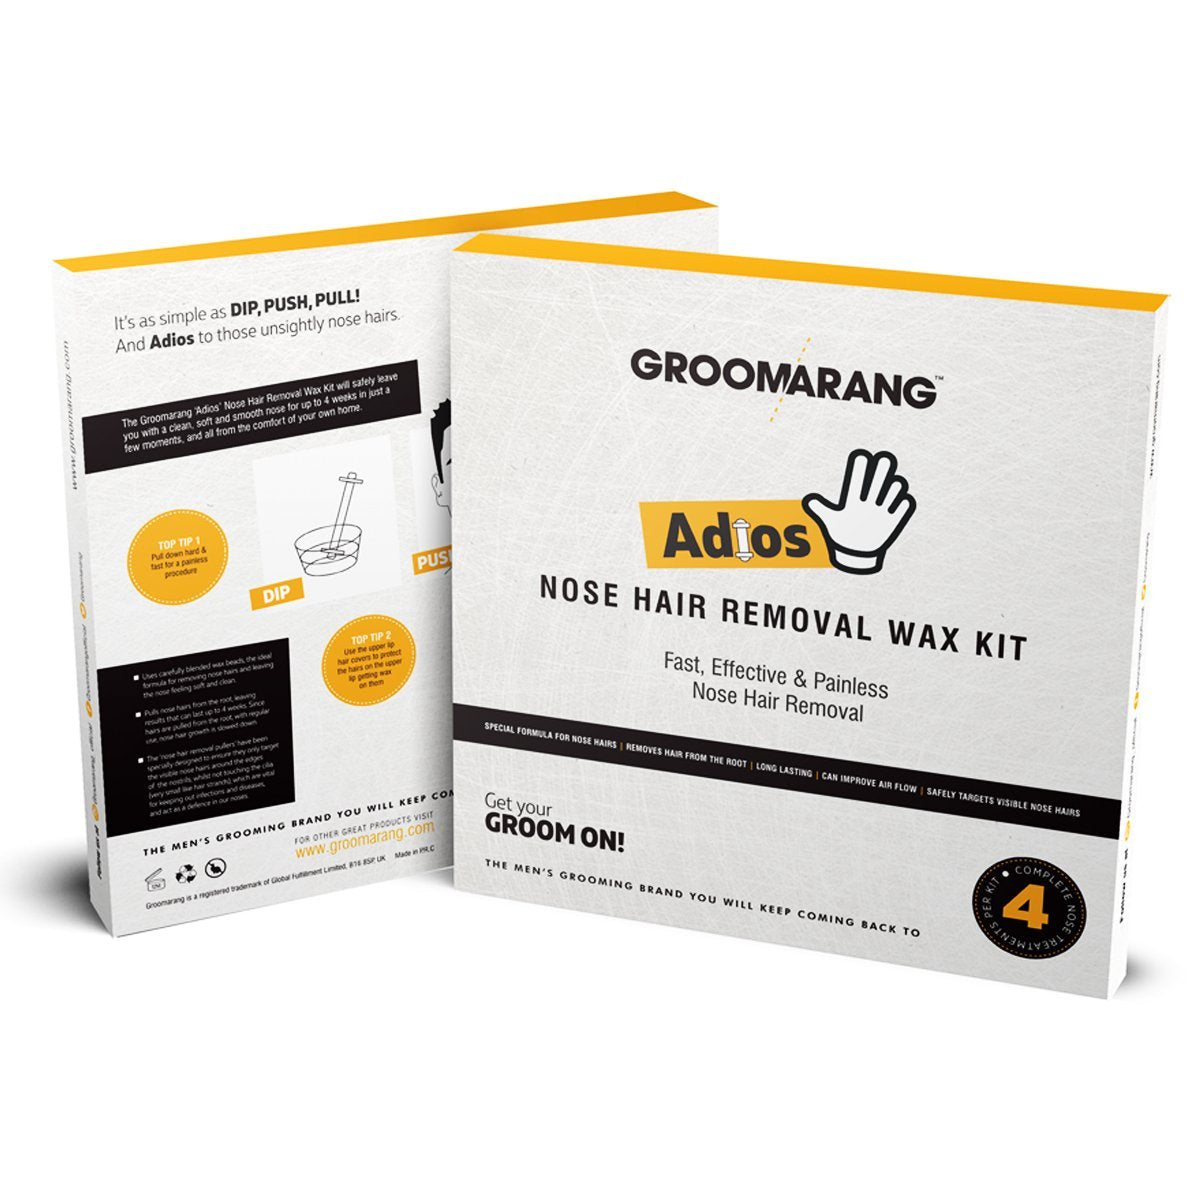 Groomarang Adios Nose Hair Removal Wax Kit, Hair Removal by Beauty Pop Cosmetics